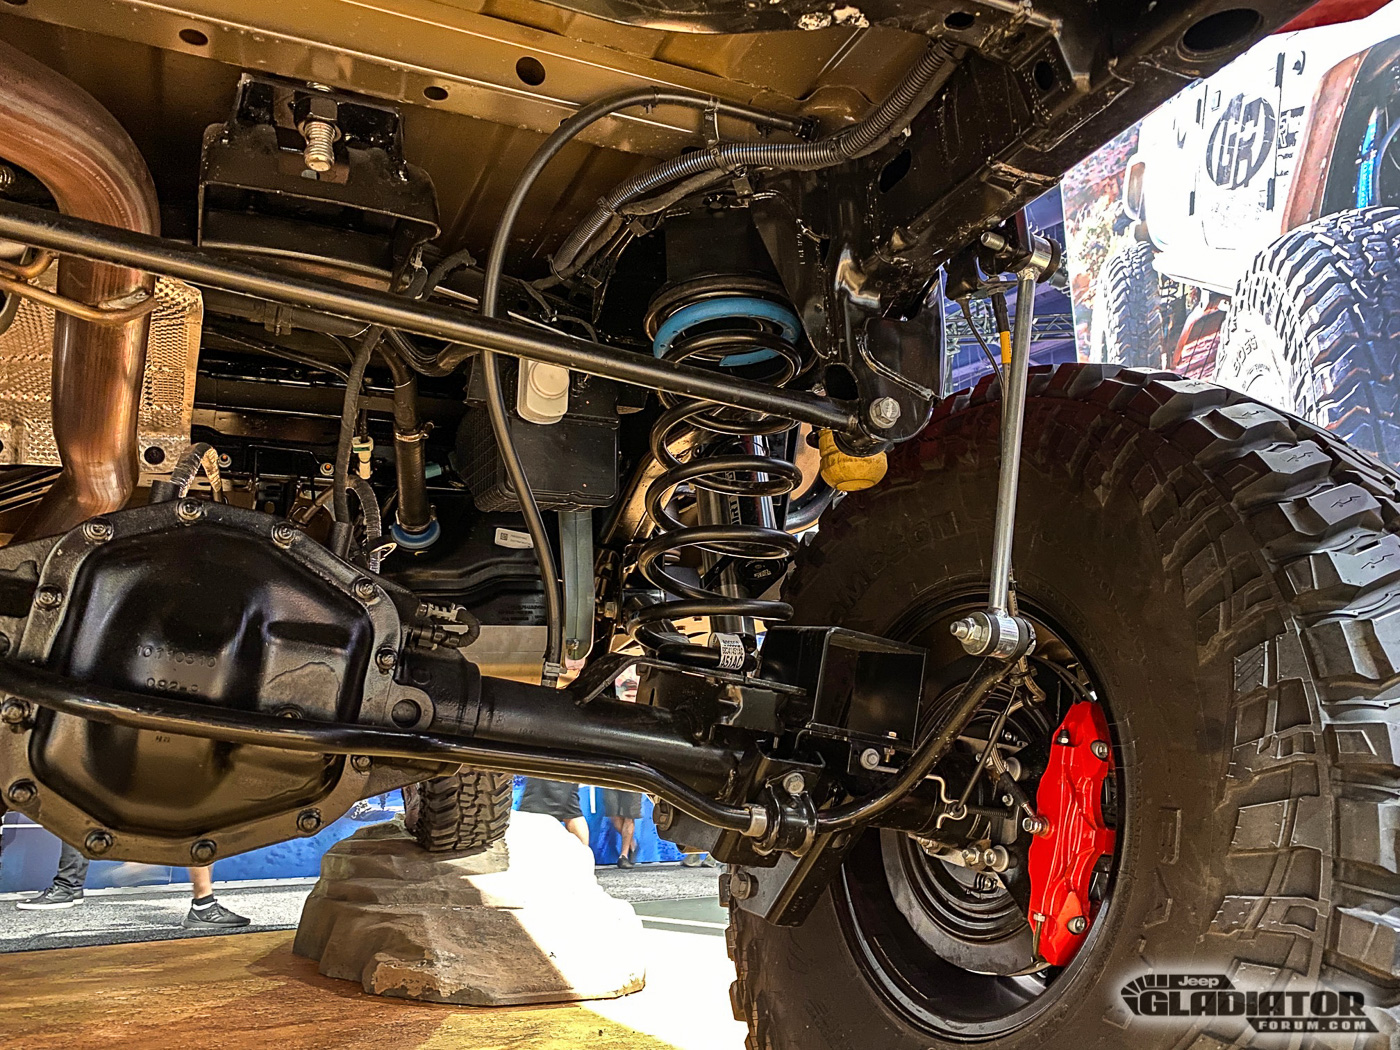 Mickey-Thompson-Genright-Off-Road-Baja-Boss-Edition-Gladiator-Build-SEMA-2019-18.jpg